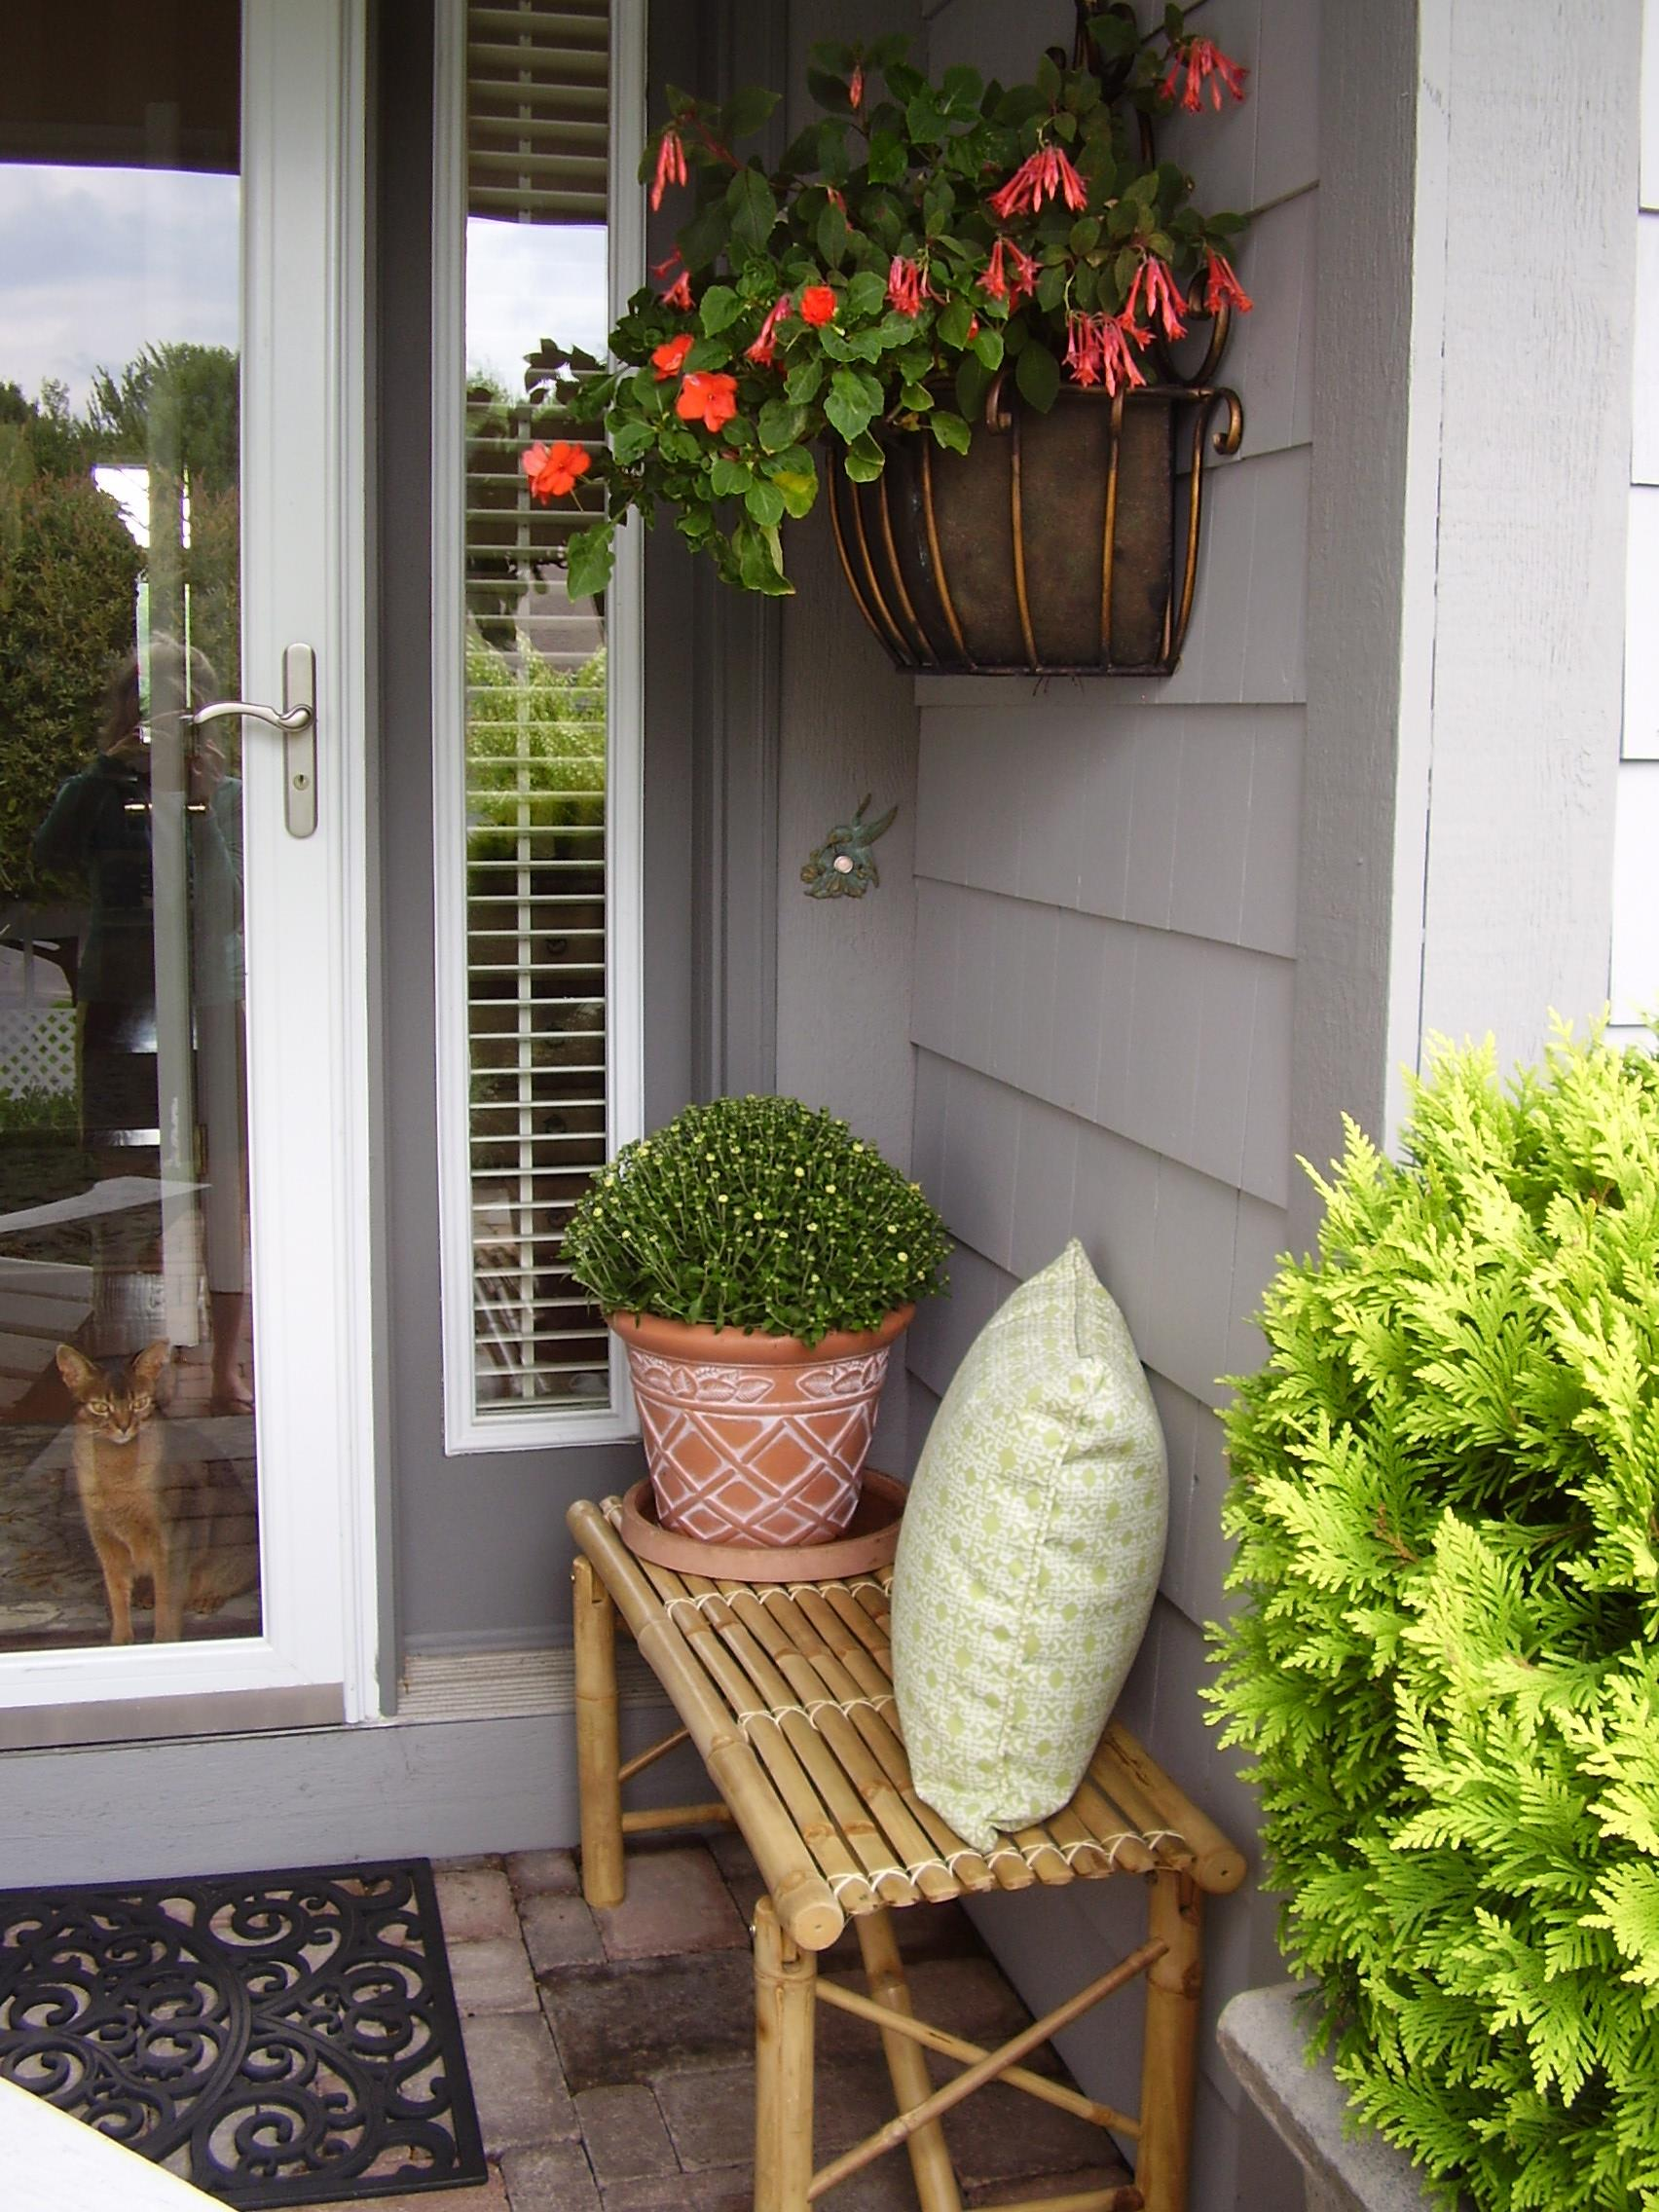 Marcia philipp 39 s blog front porches Small front porch decorating ideas for fall